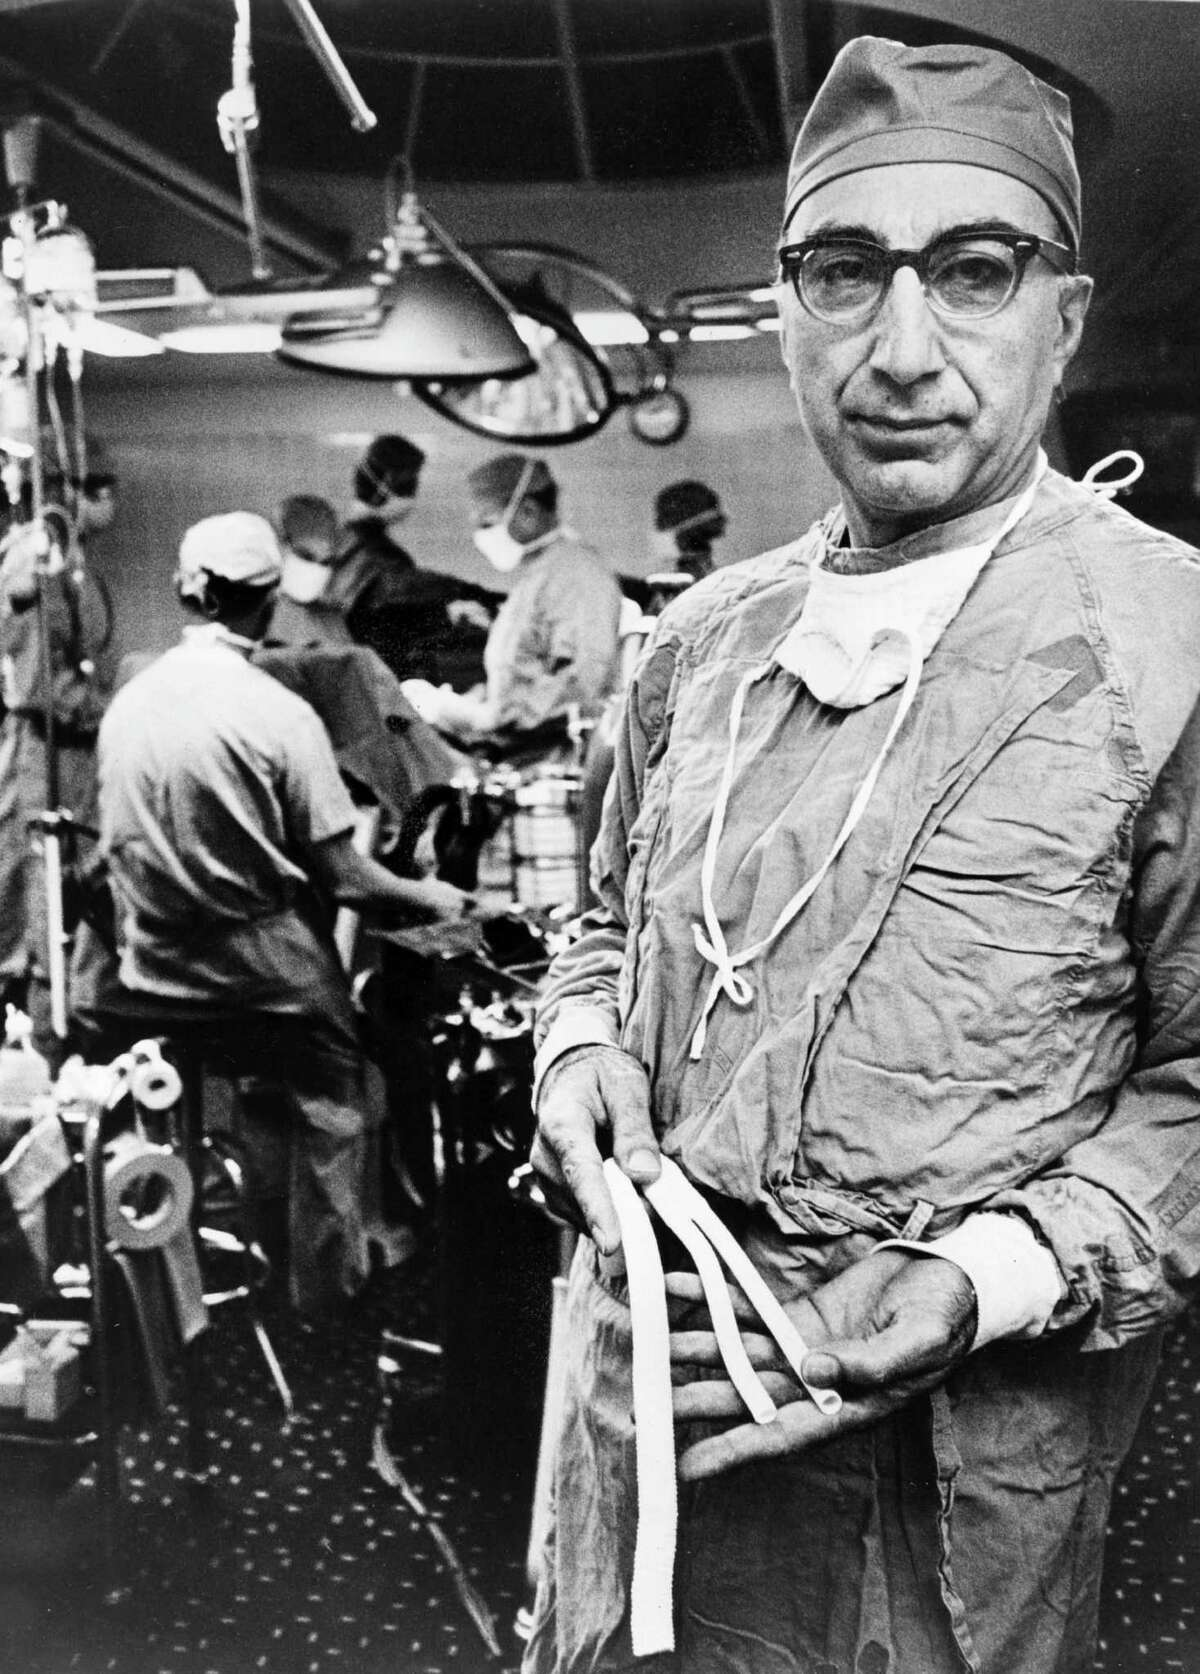 The gift of graft Baylor College of Medicine is credited with inventing the Dacron graft, which usually replaces or repairs blood vessels. Houston's Dr. Michael Ellis DeBakey was the first U.S. surgeon to remove an aneurysm in the aorta near the stomach.Here, Dr. DeBakey holds arterial grafts in 1966, fabricated from knitted Dacron tubing which have proven to be, in this gifted surgeon's hands, a lifesaving device for hundreds of his patients.